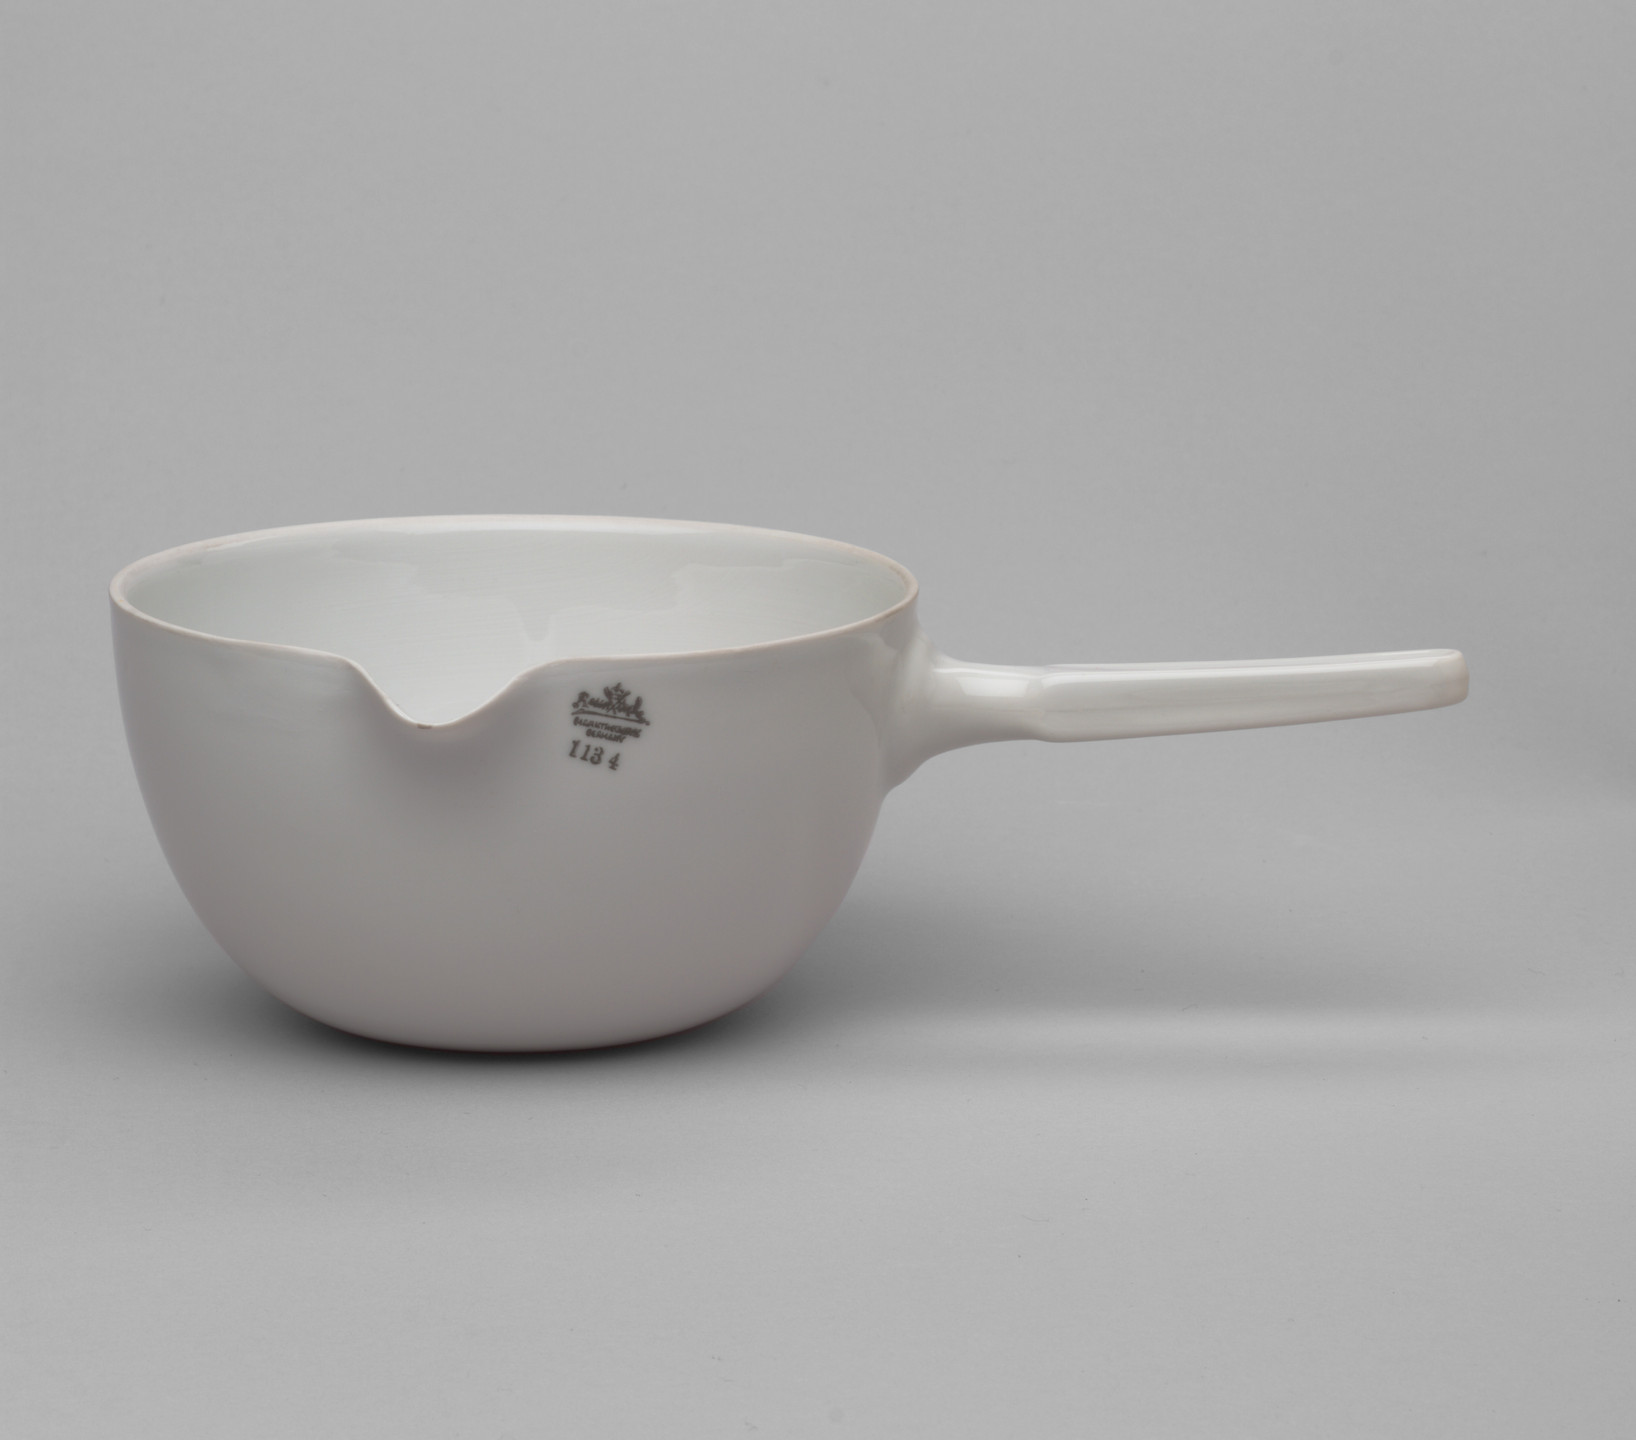 Rosenthal Porzellan A.G., Germany. Casserole with Handle. Unknown